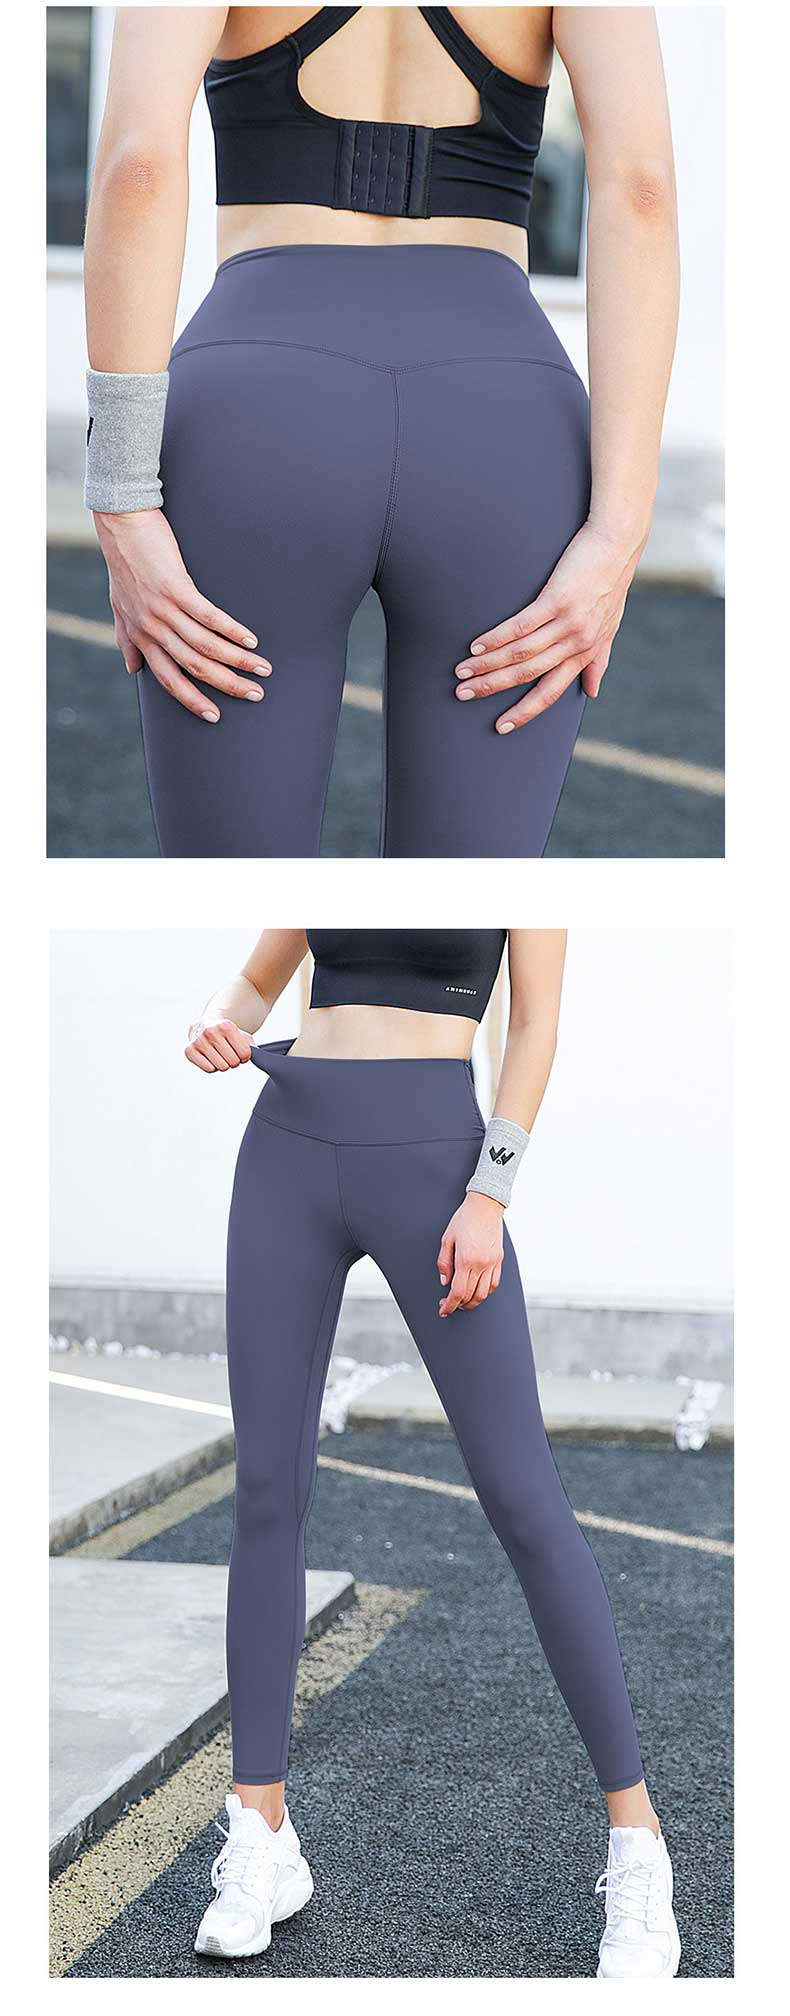 High elasticity and wear resistance, breathable and comfortable compression running tights.